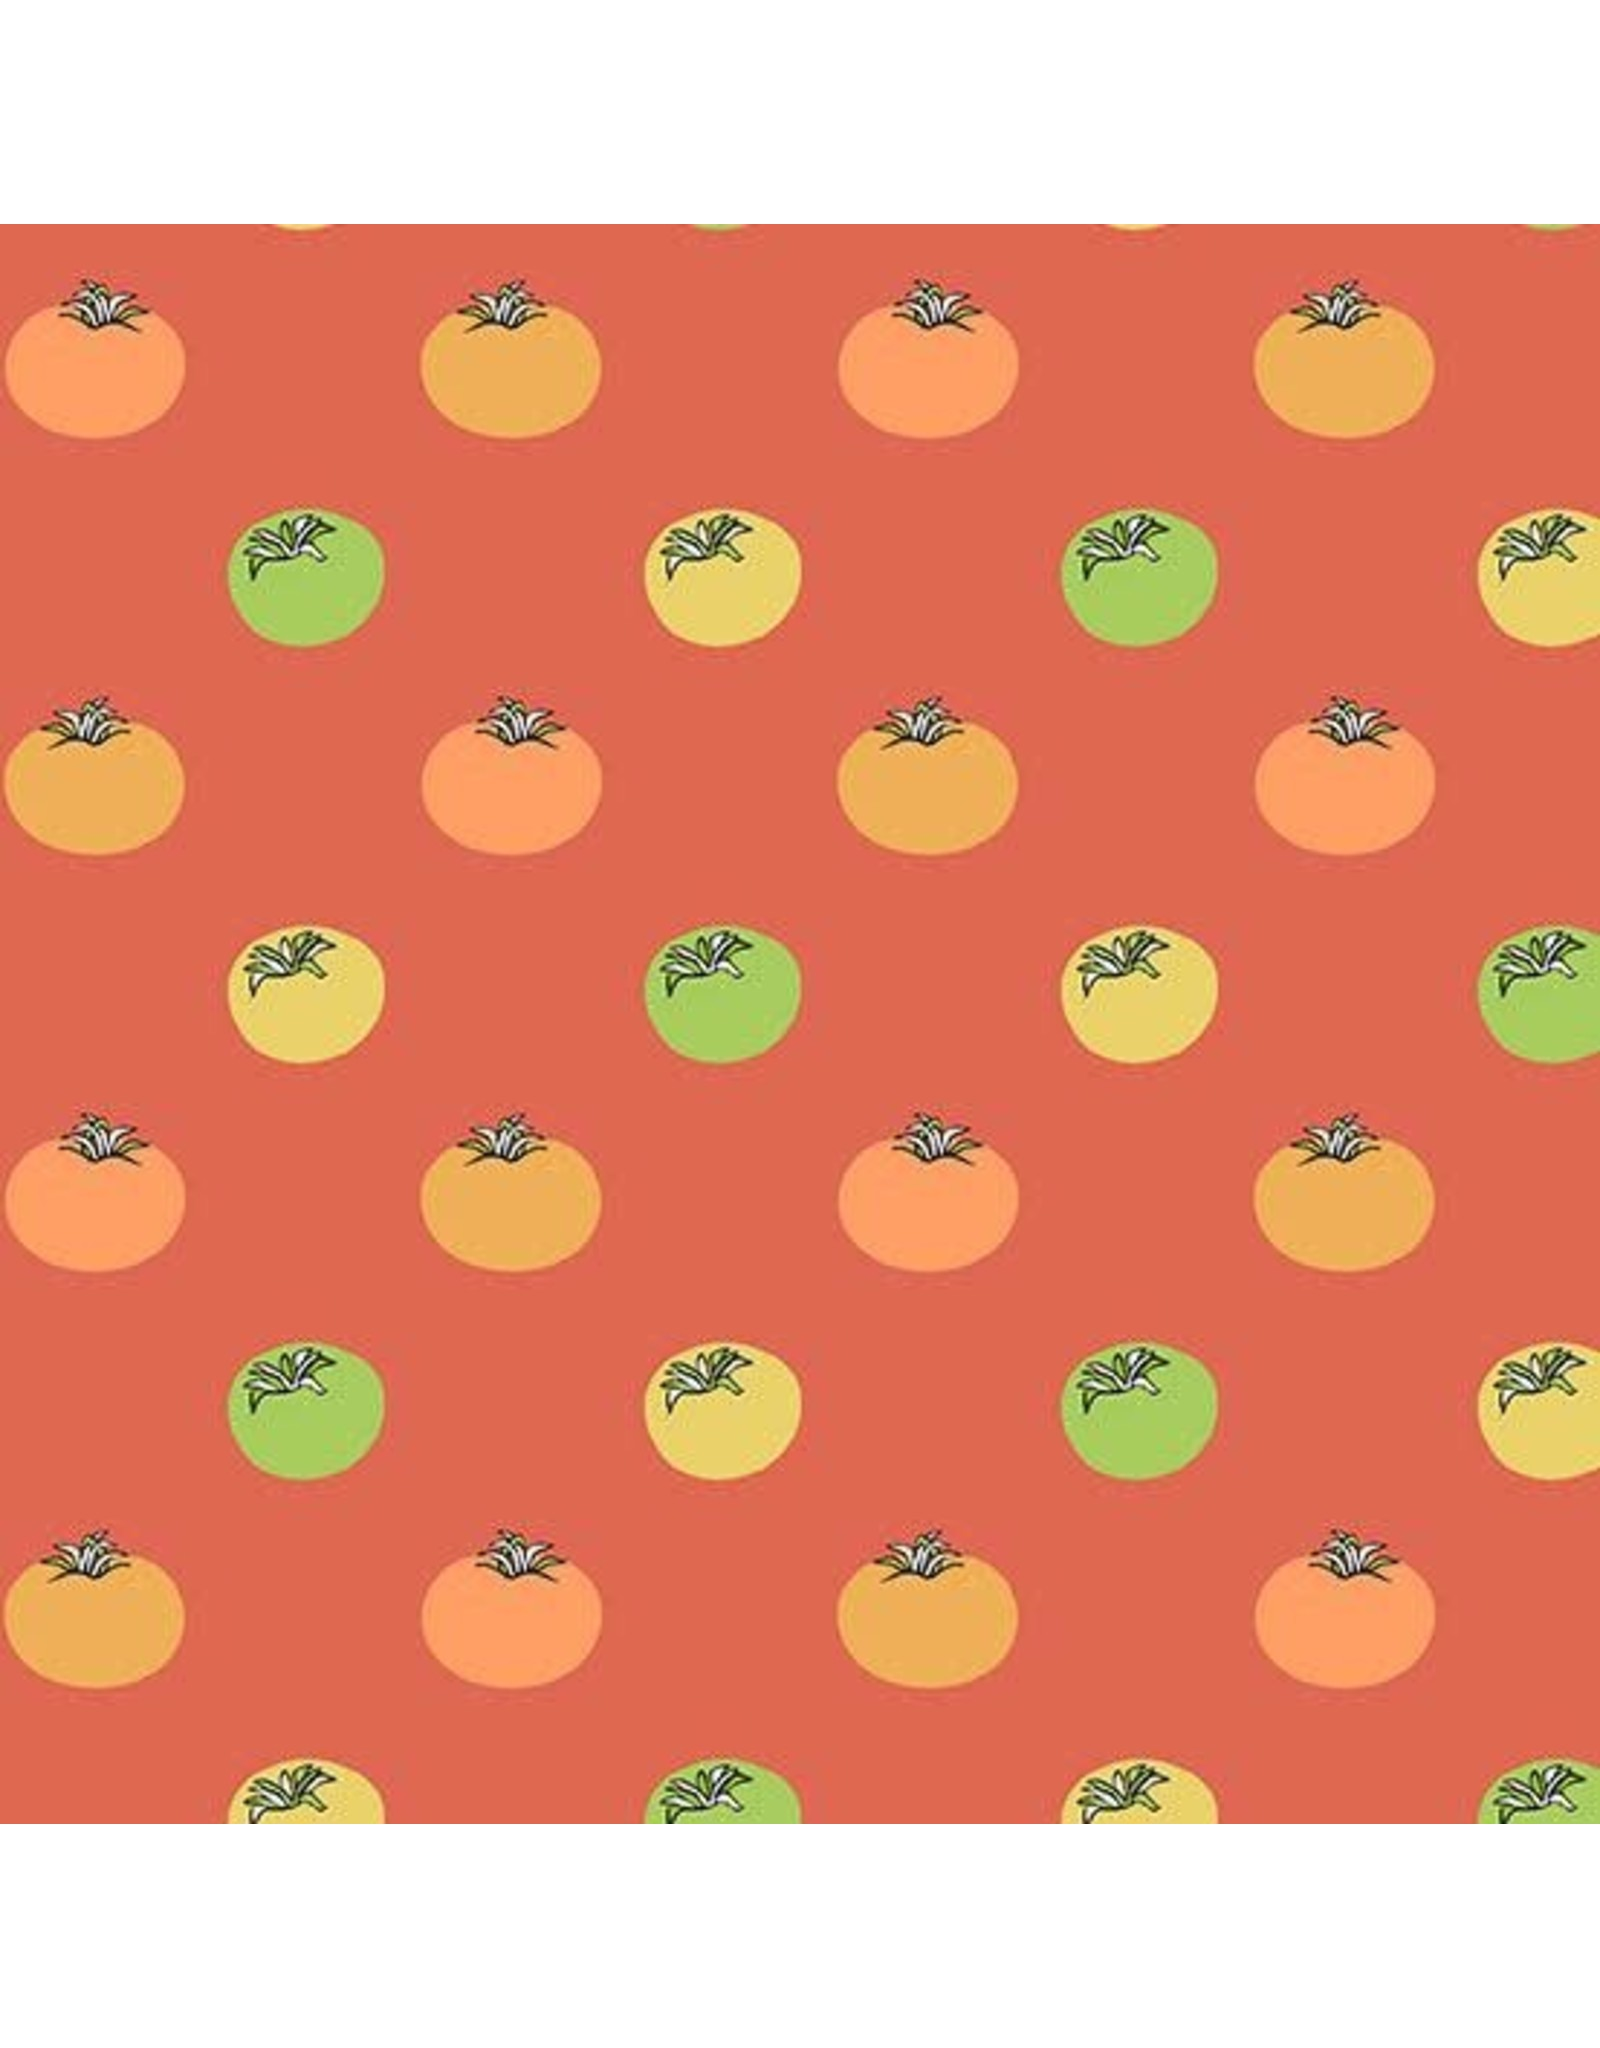 Andover Fabrics ON SALE-Farm to Fabric, Heirloom Tomatoes in Red, Fabric FULL-Yards